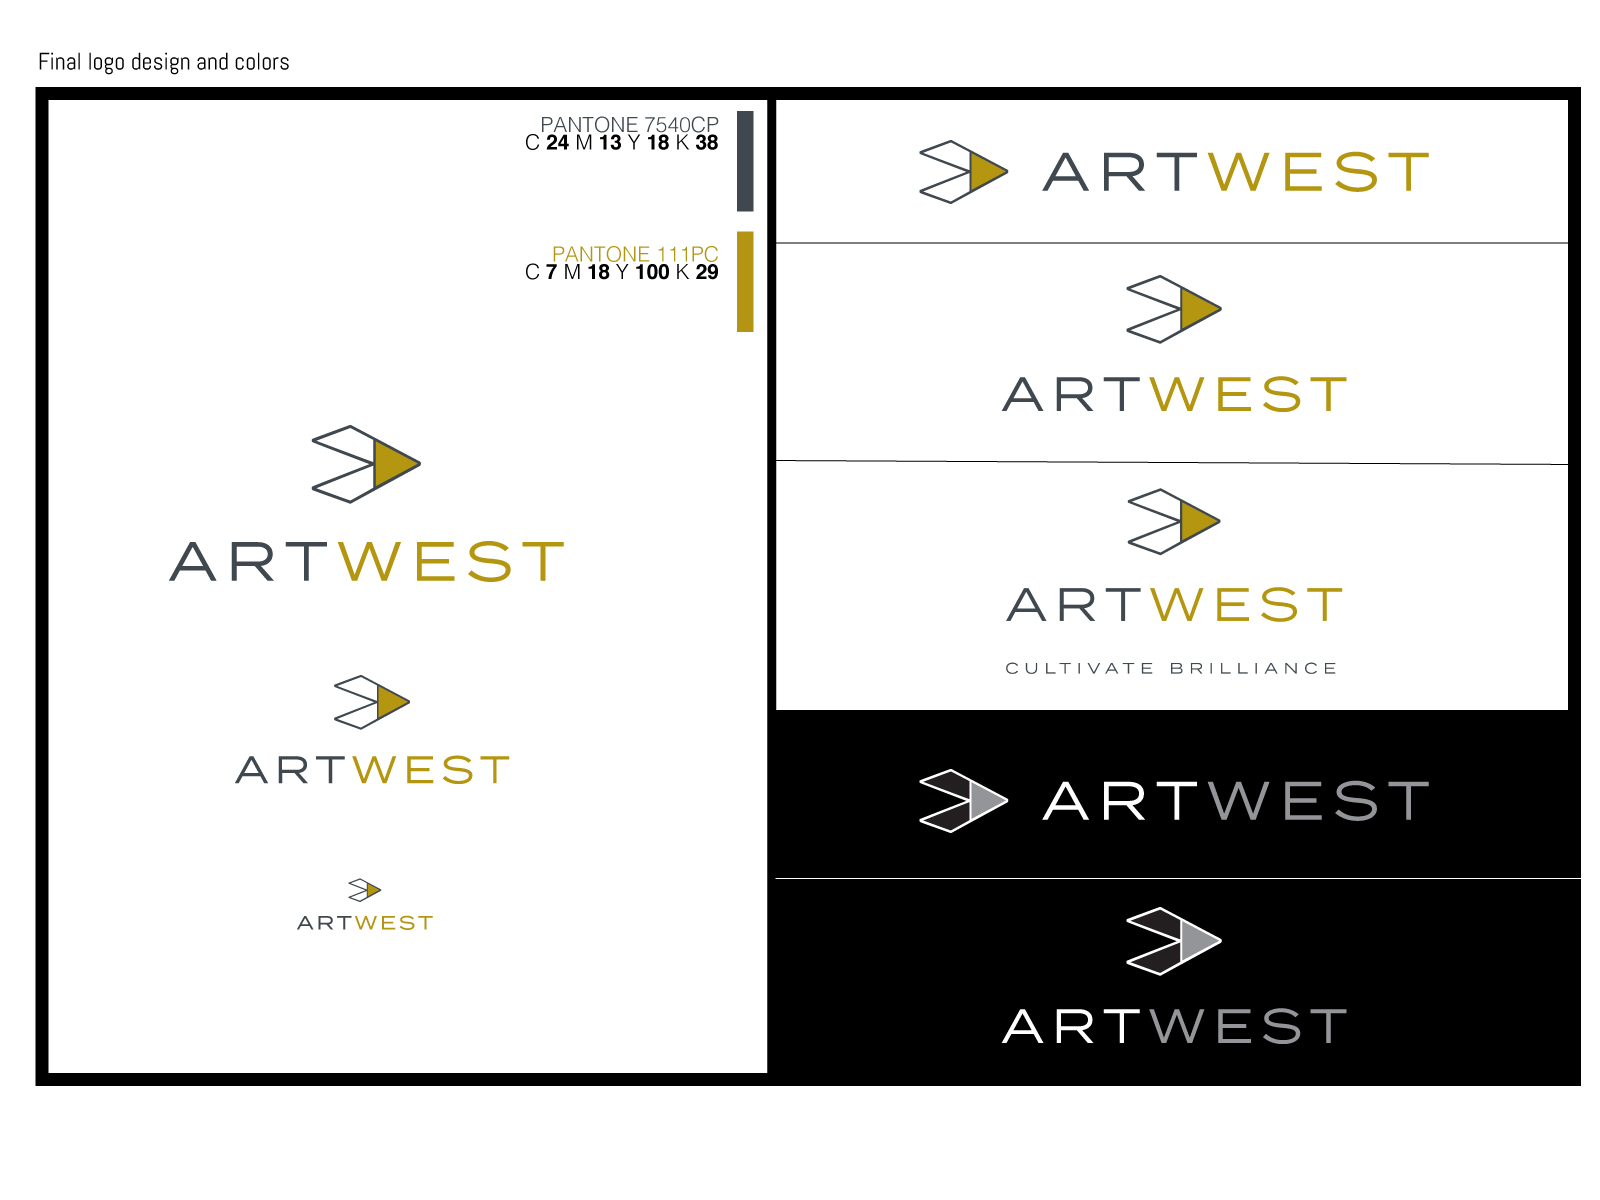 Final ArtWest logo design